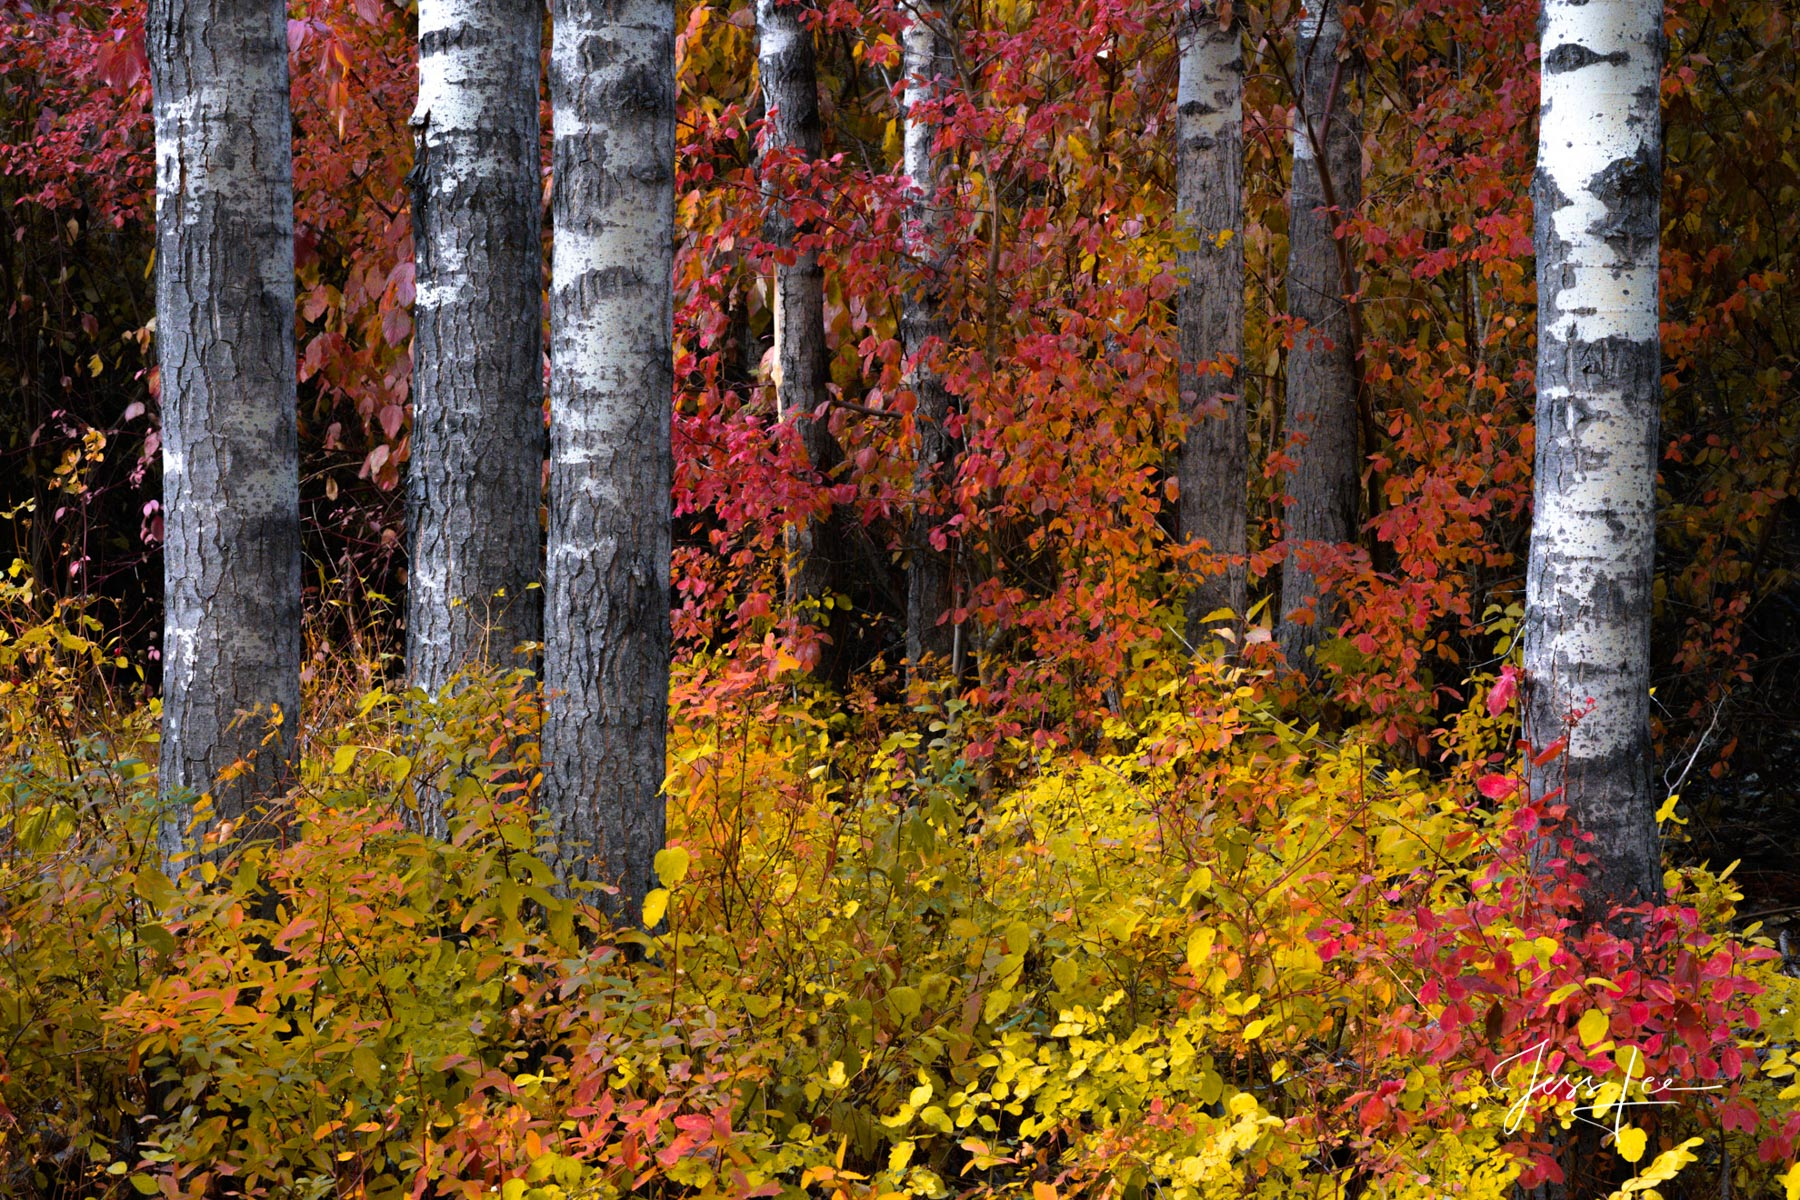 Museum Quality Photography Prints of this Autumn Birch Tree Forest., photo